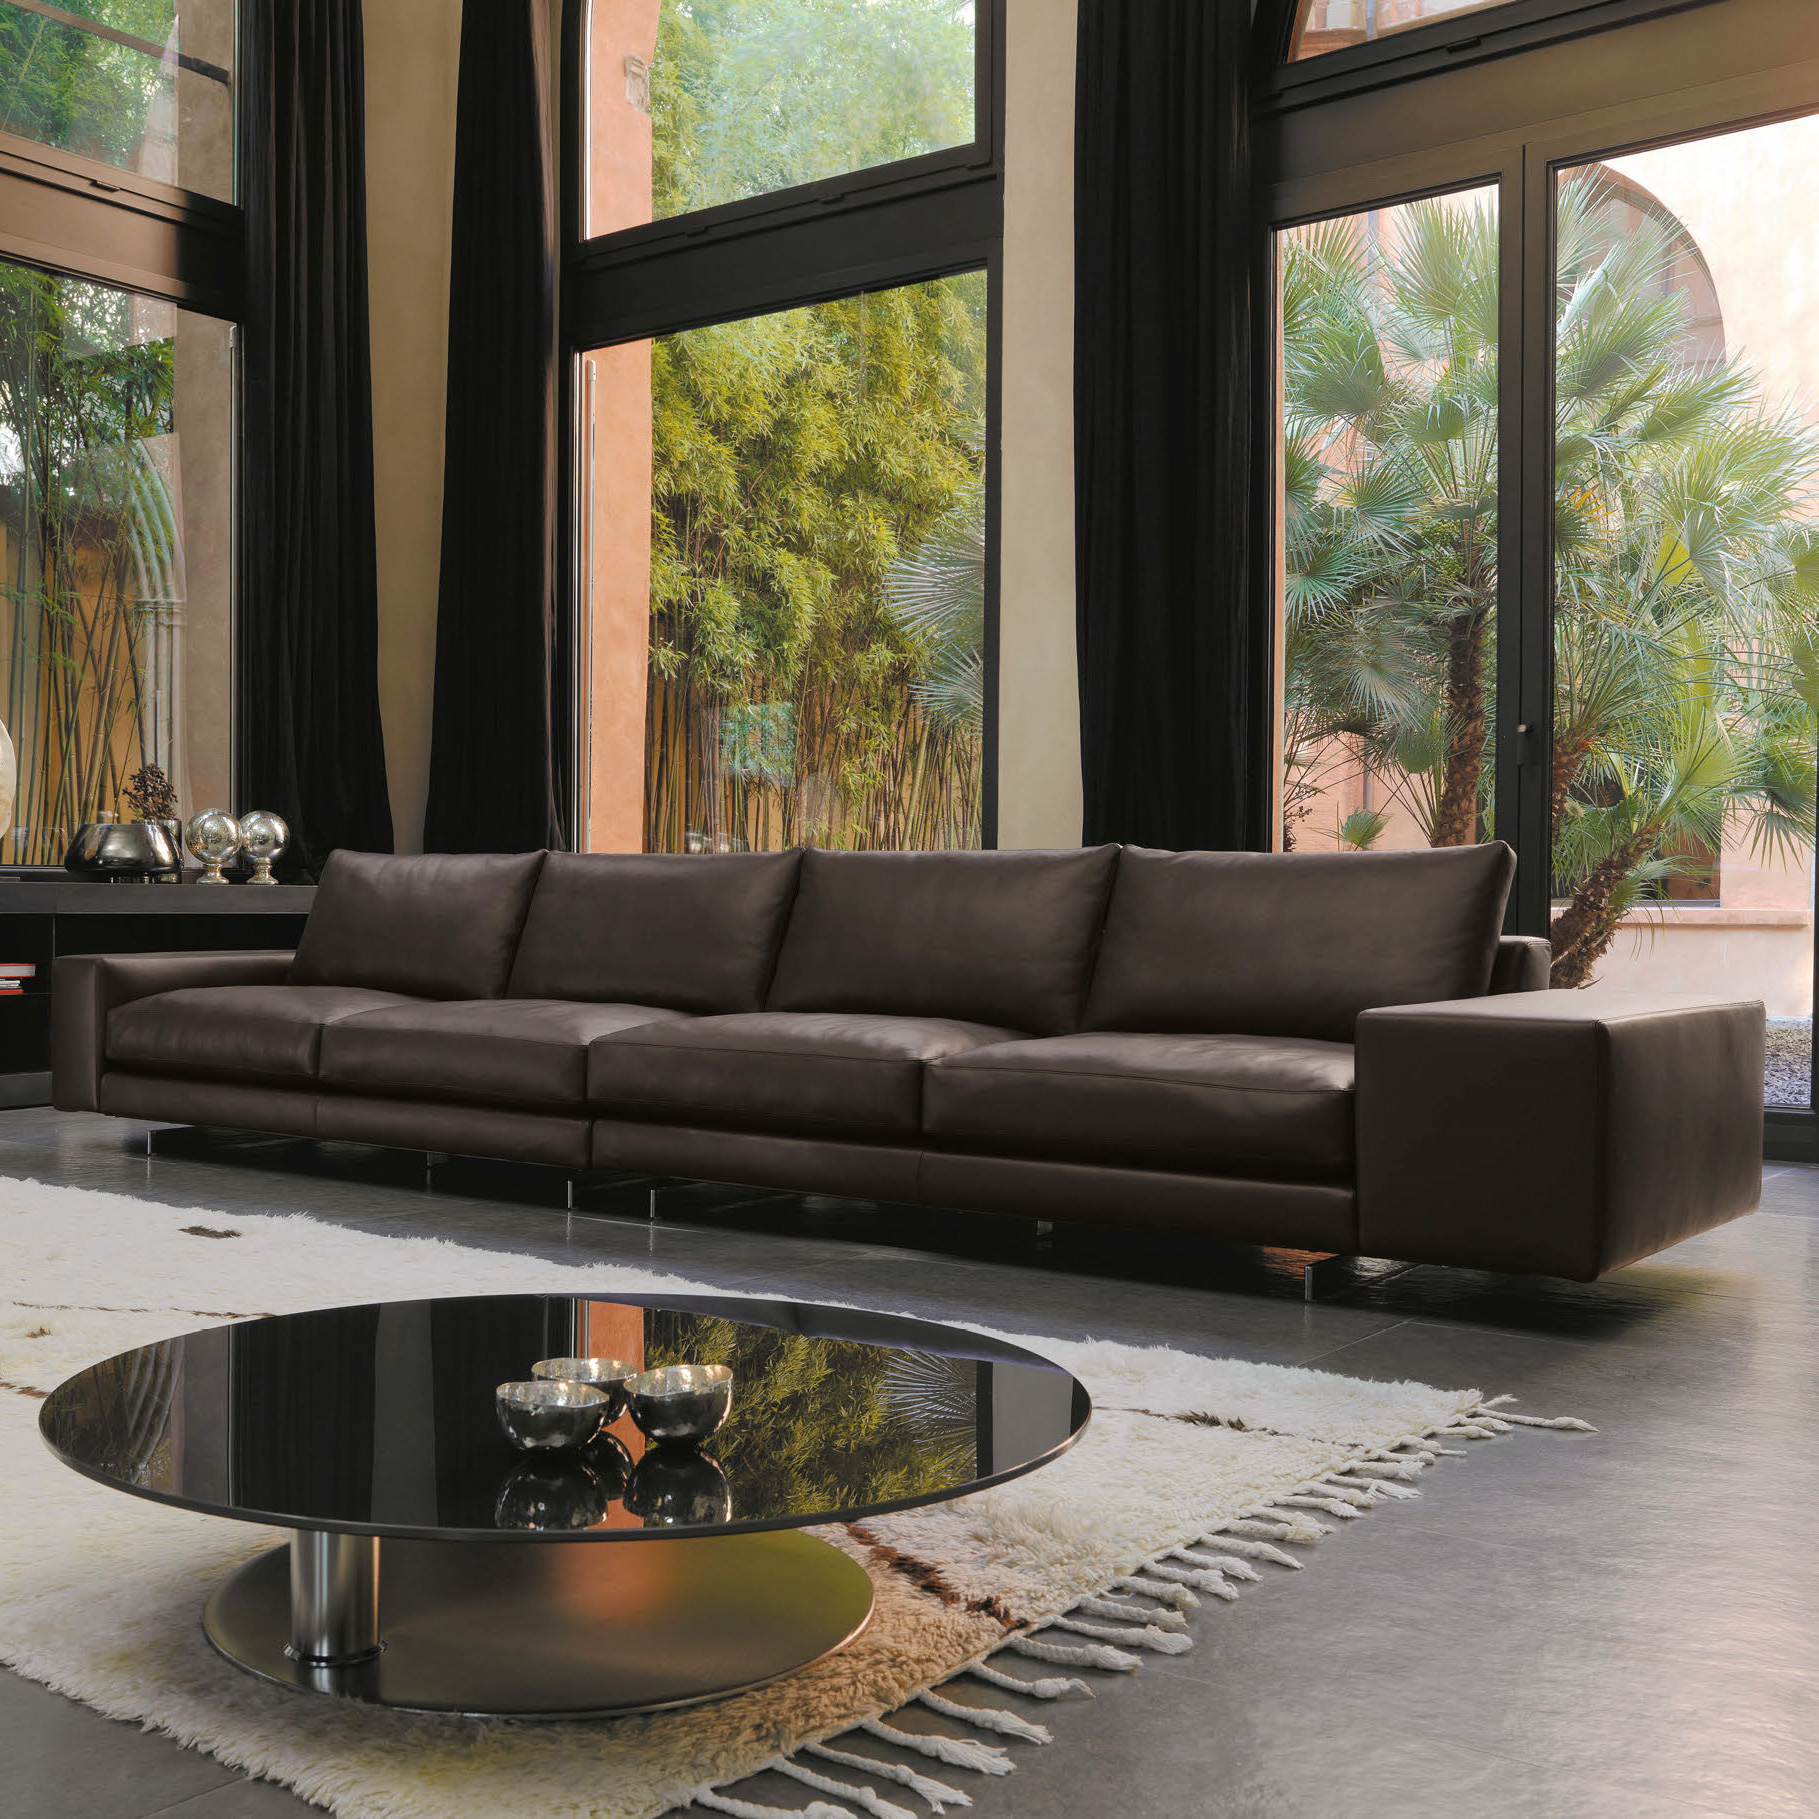 Luxury italian agon sectional italian designer luxury for Contemporary italian furniture